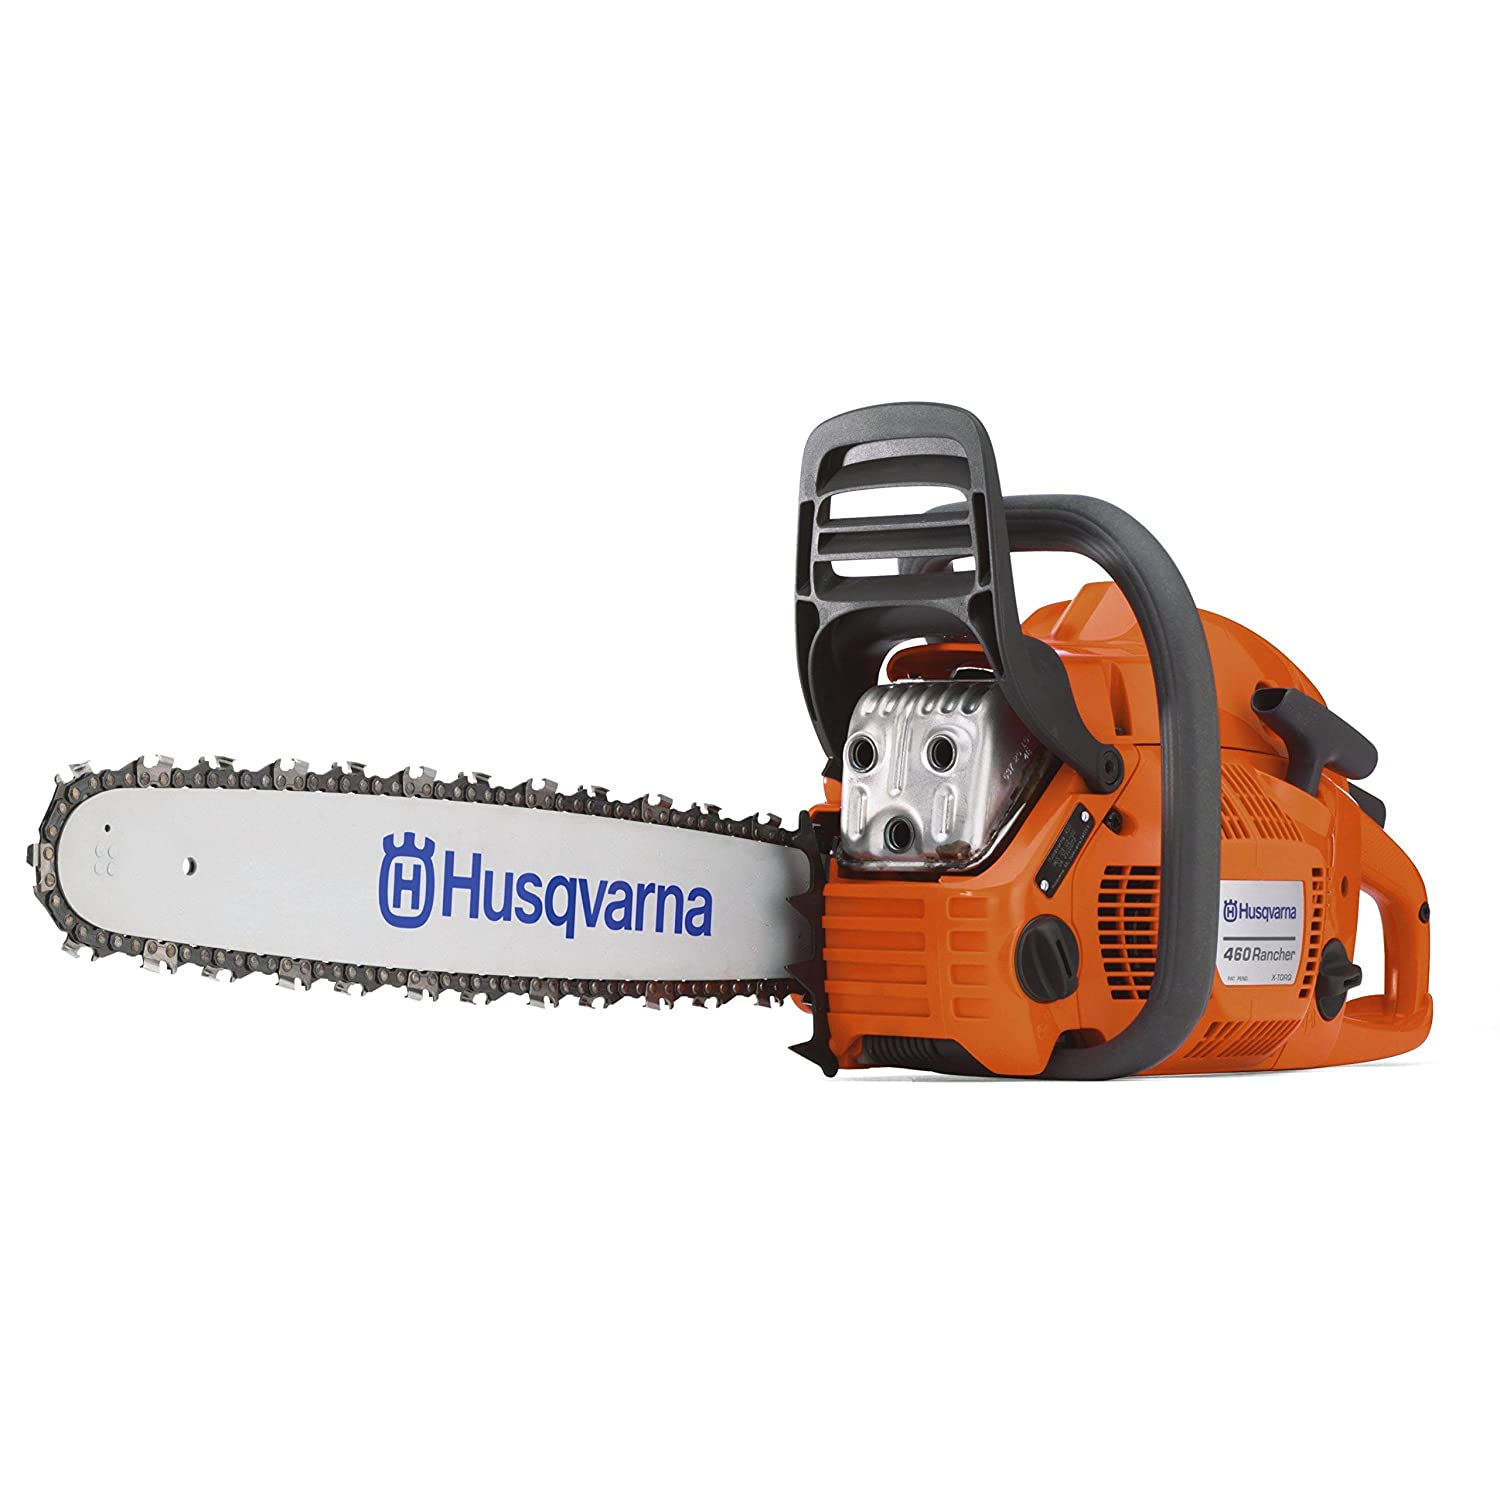 Husqvarna 460 Rancher, 18 in. 60.3cc 2-Cycle Gas Chainsaw Husqvarna/Poulan/Weed Eater 966048328